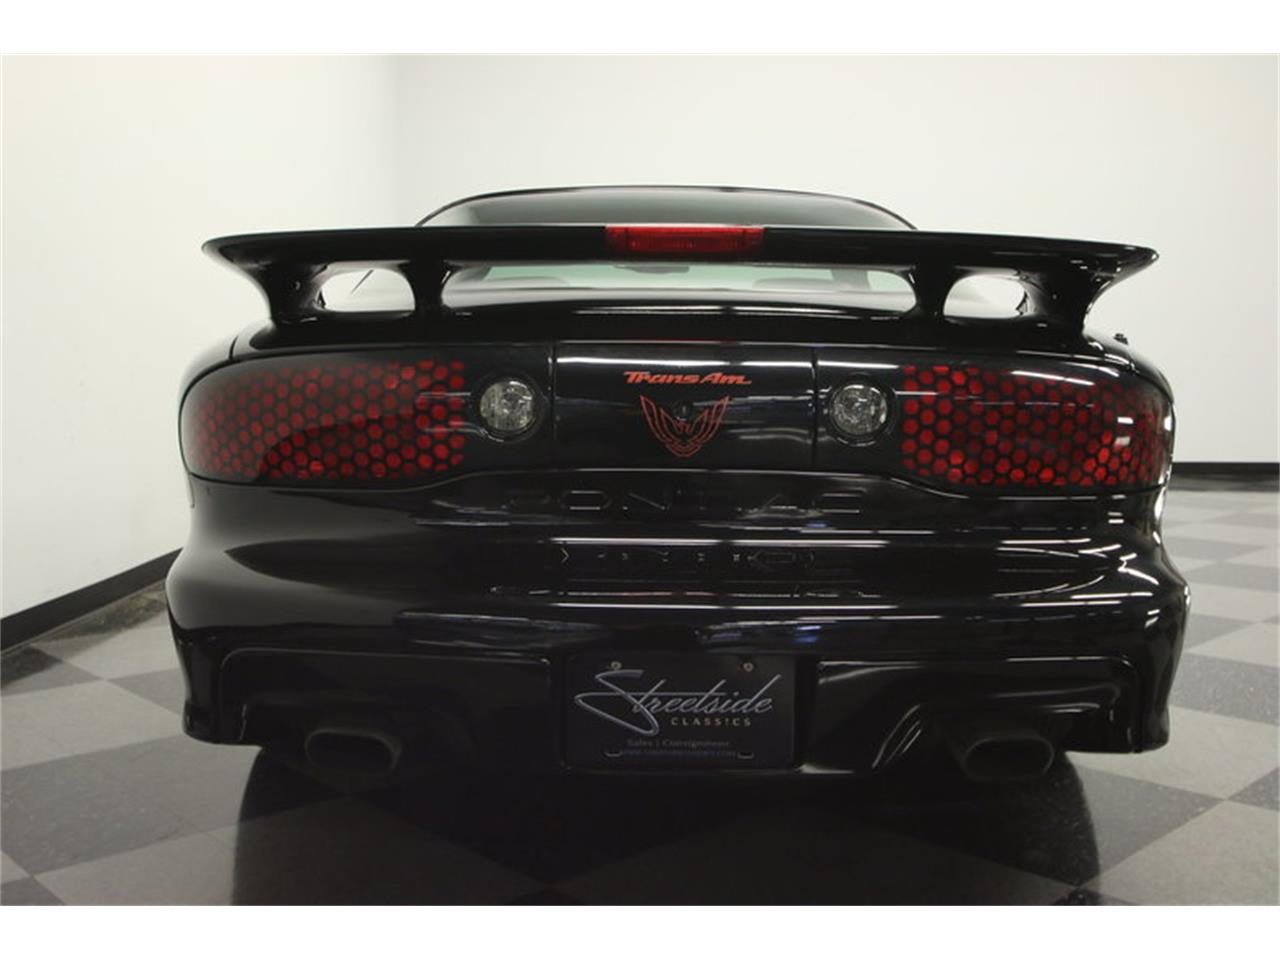 Large Picture of '98 Firebird Trans Am located in Florida Offered by Streetside Classics - Tampa - M9OB